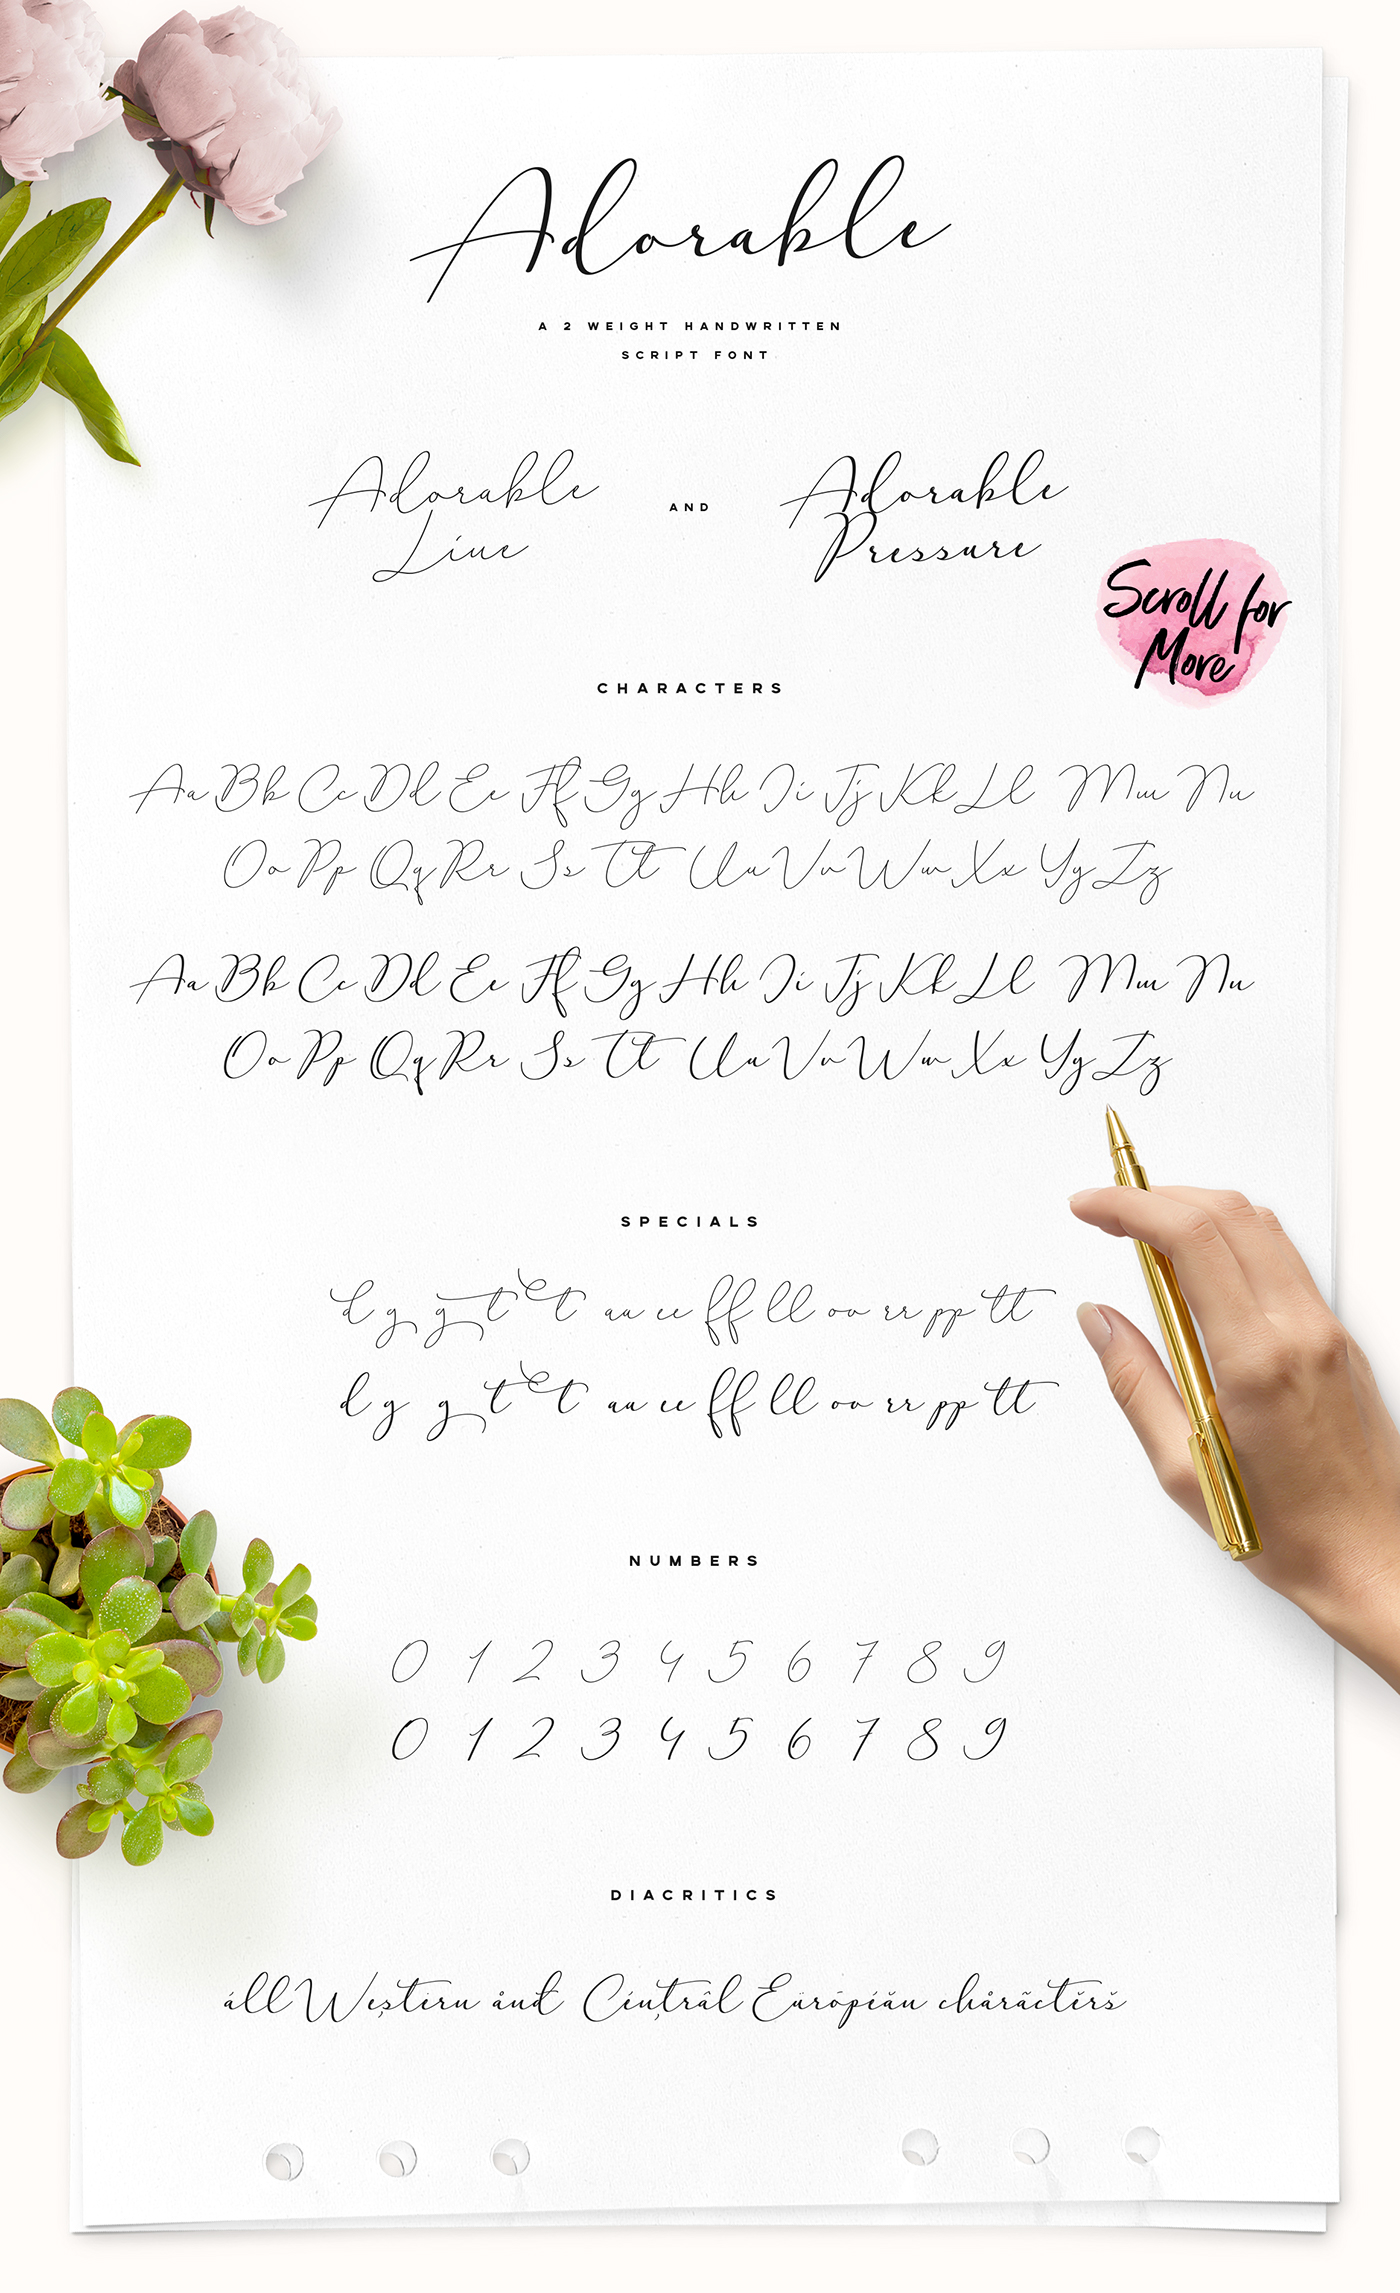 Adorable Handwritten Script Font On Behance